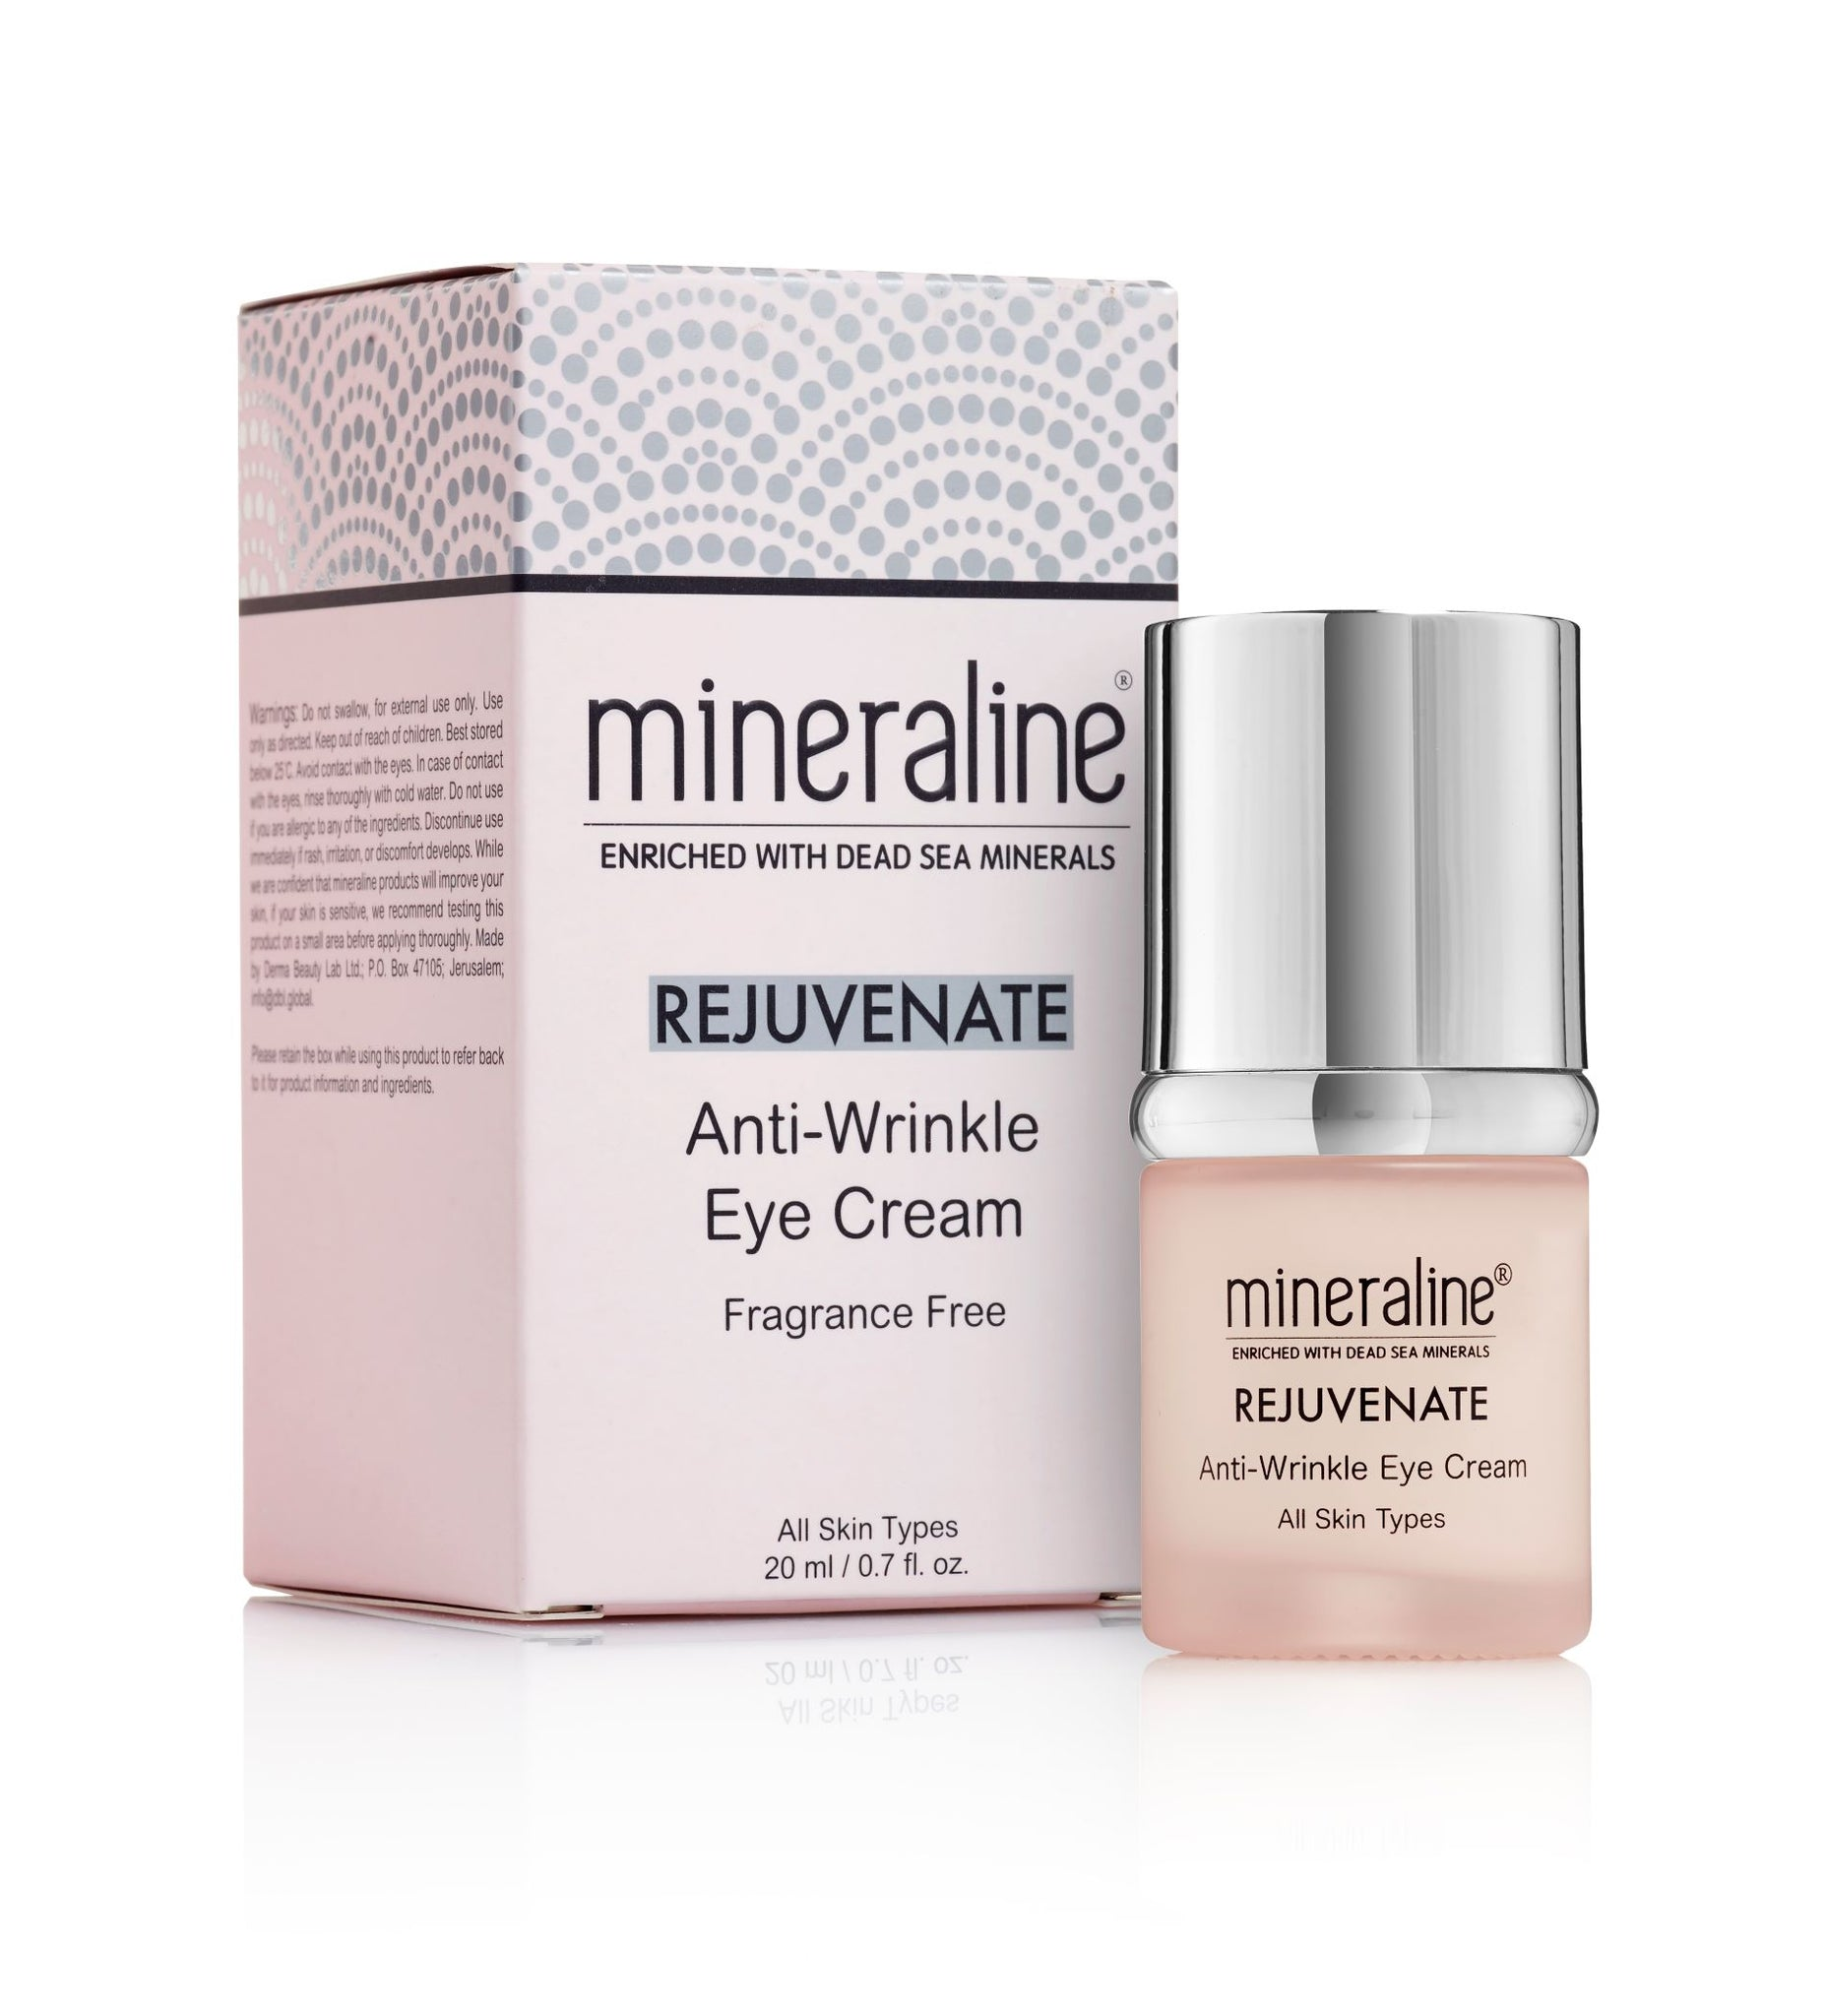 Rejuvenate - Anti-Wrinkle Eye Cream